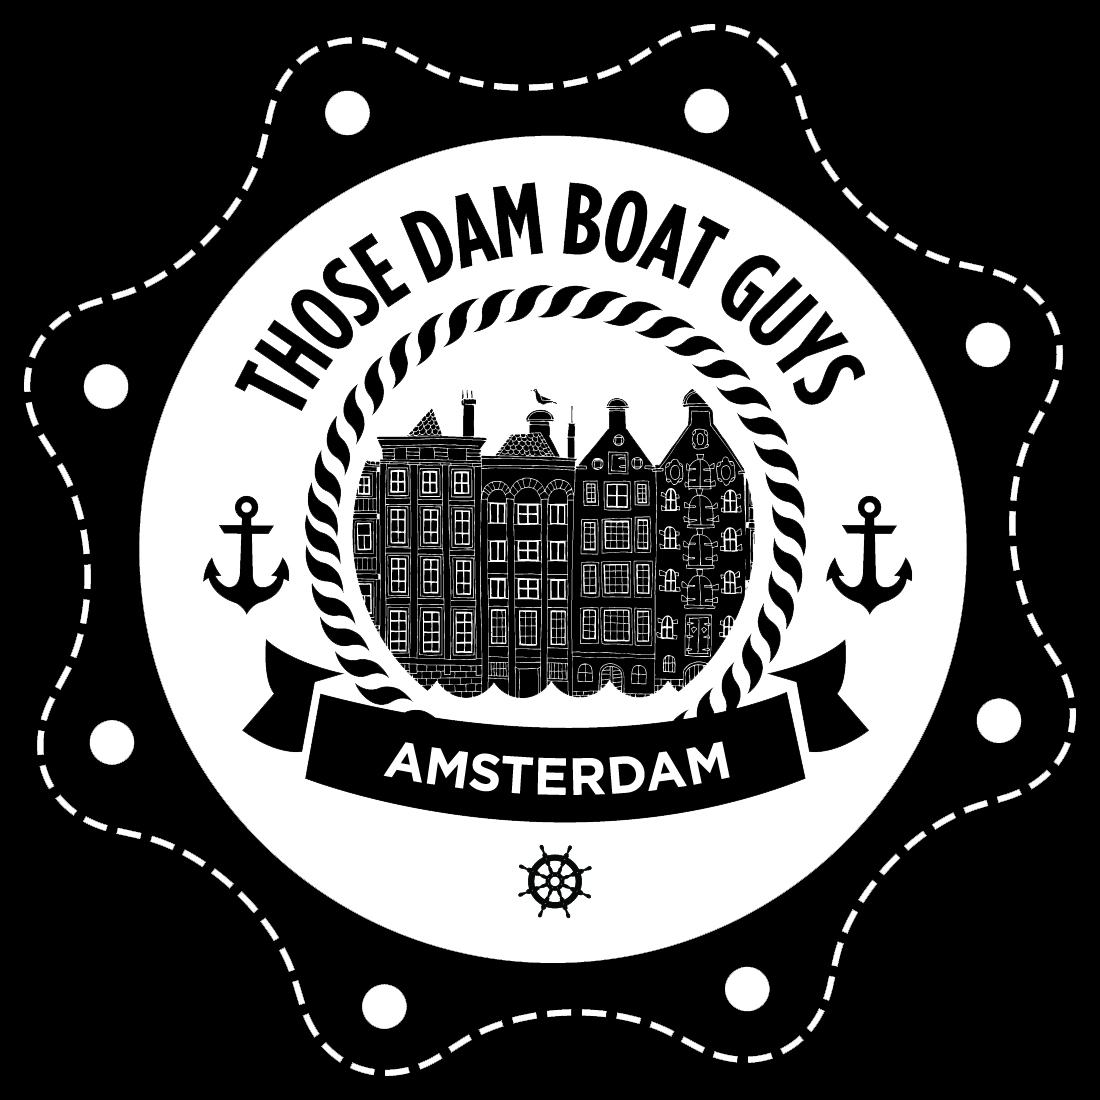 Those Dam Boat Guys